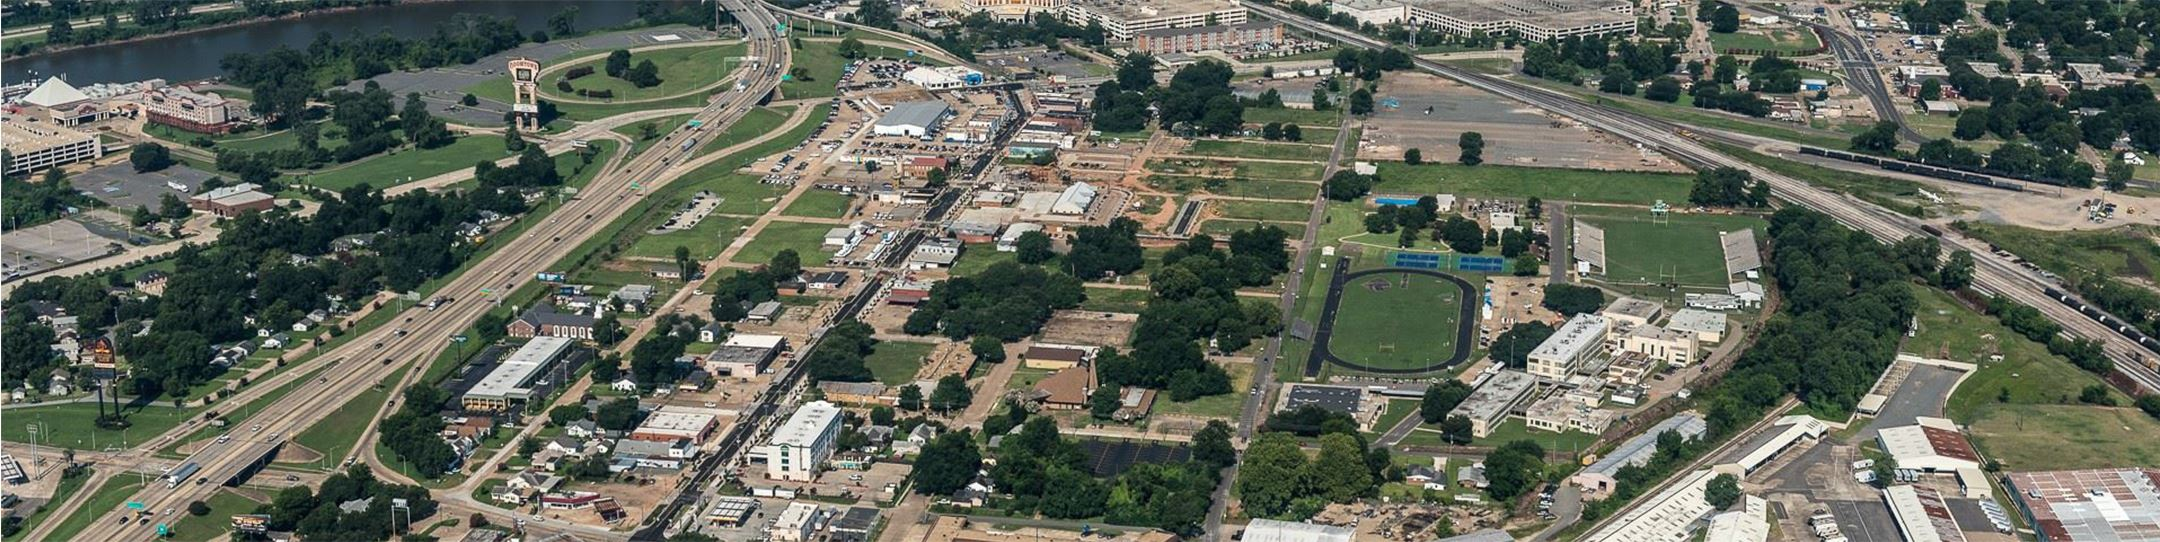 Aerial View of Bossier City